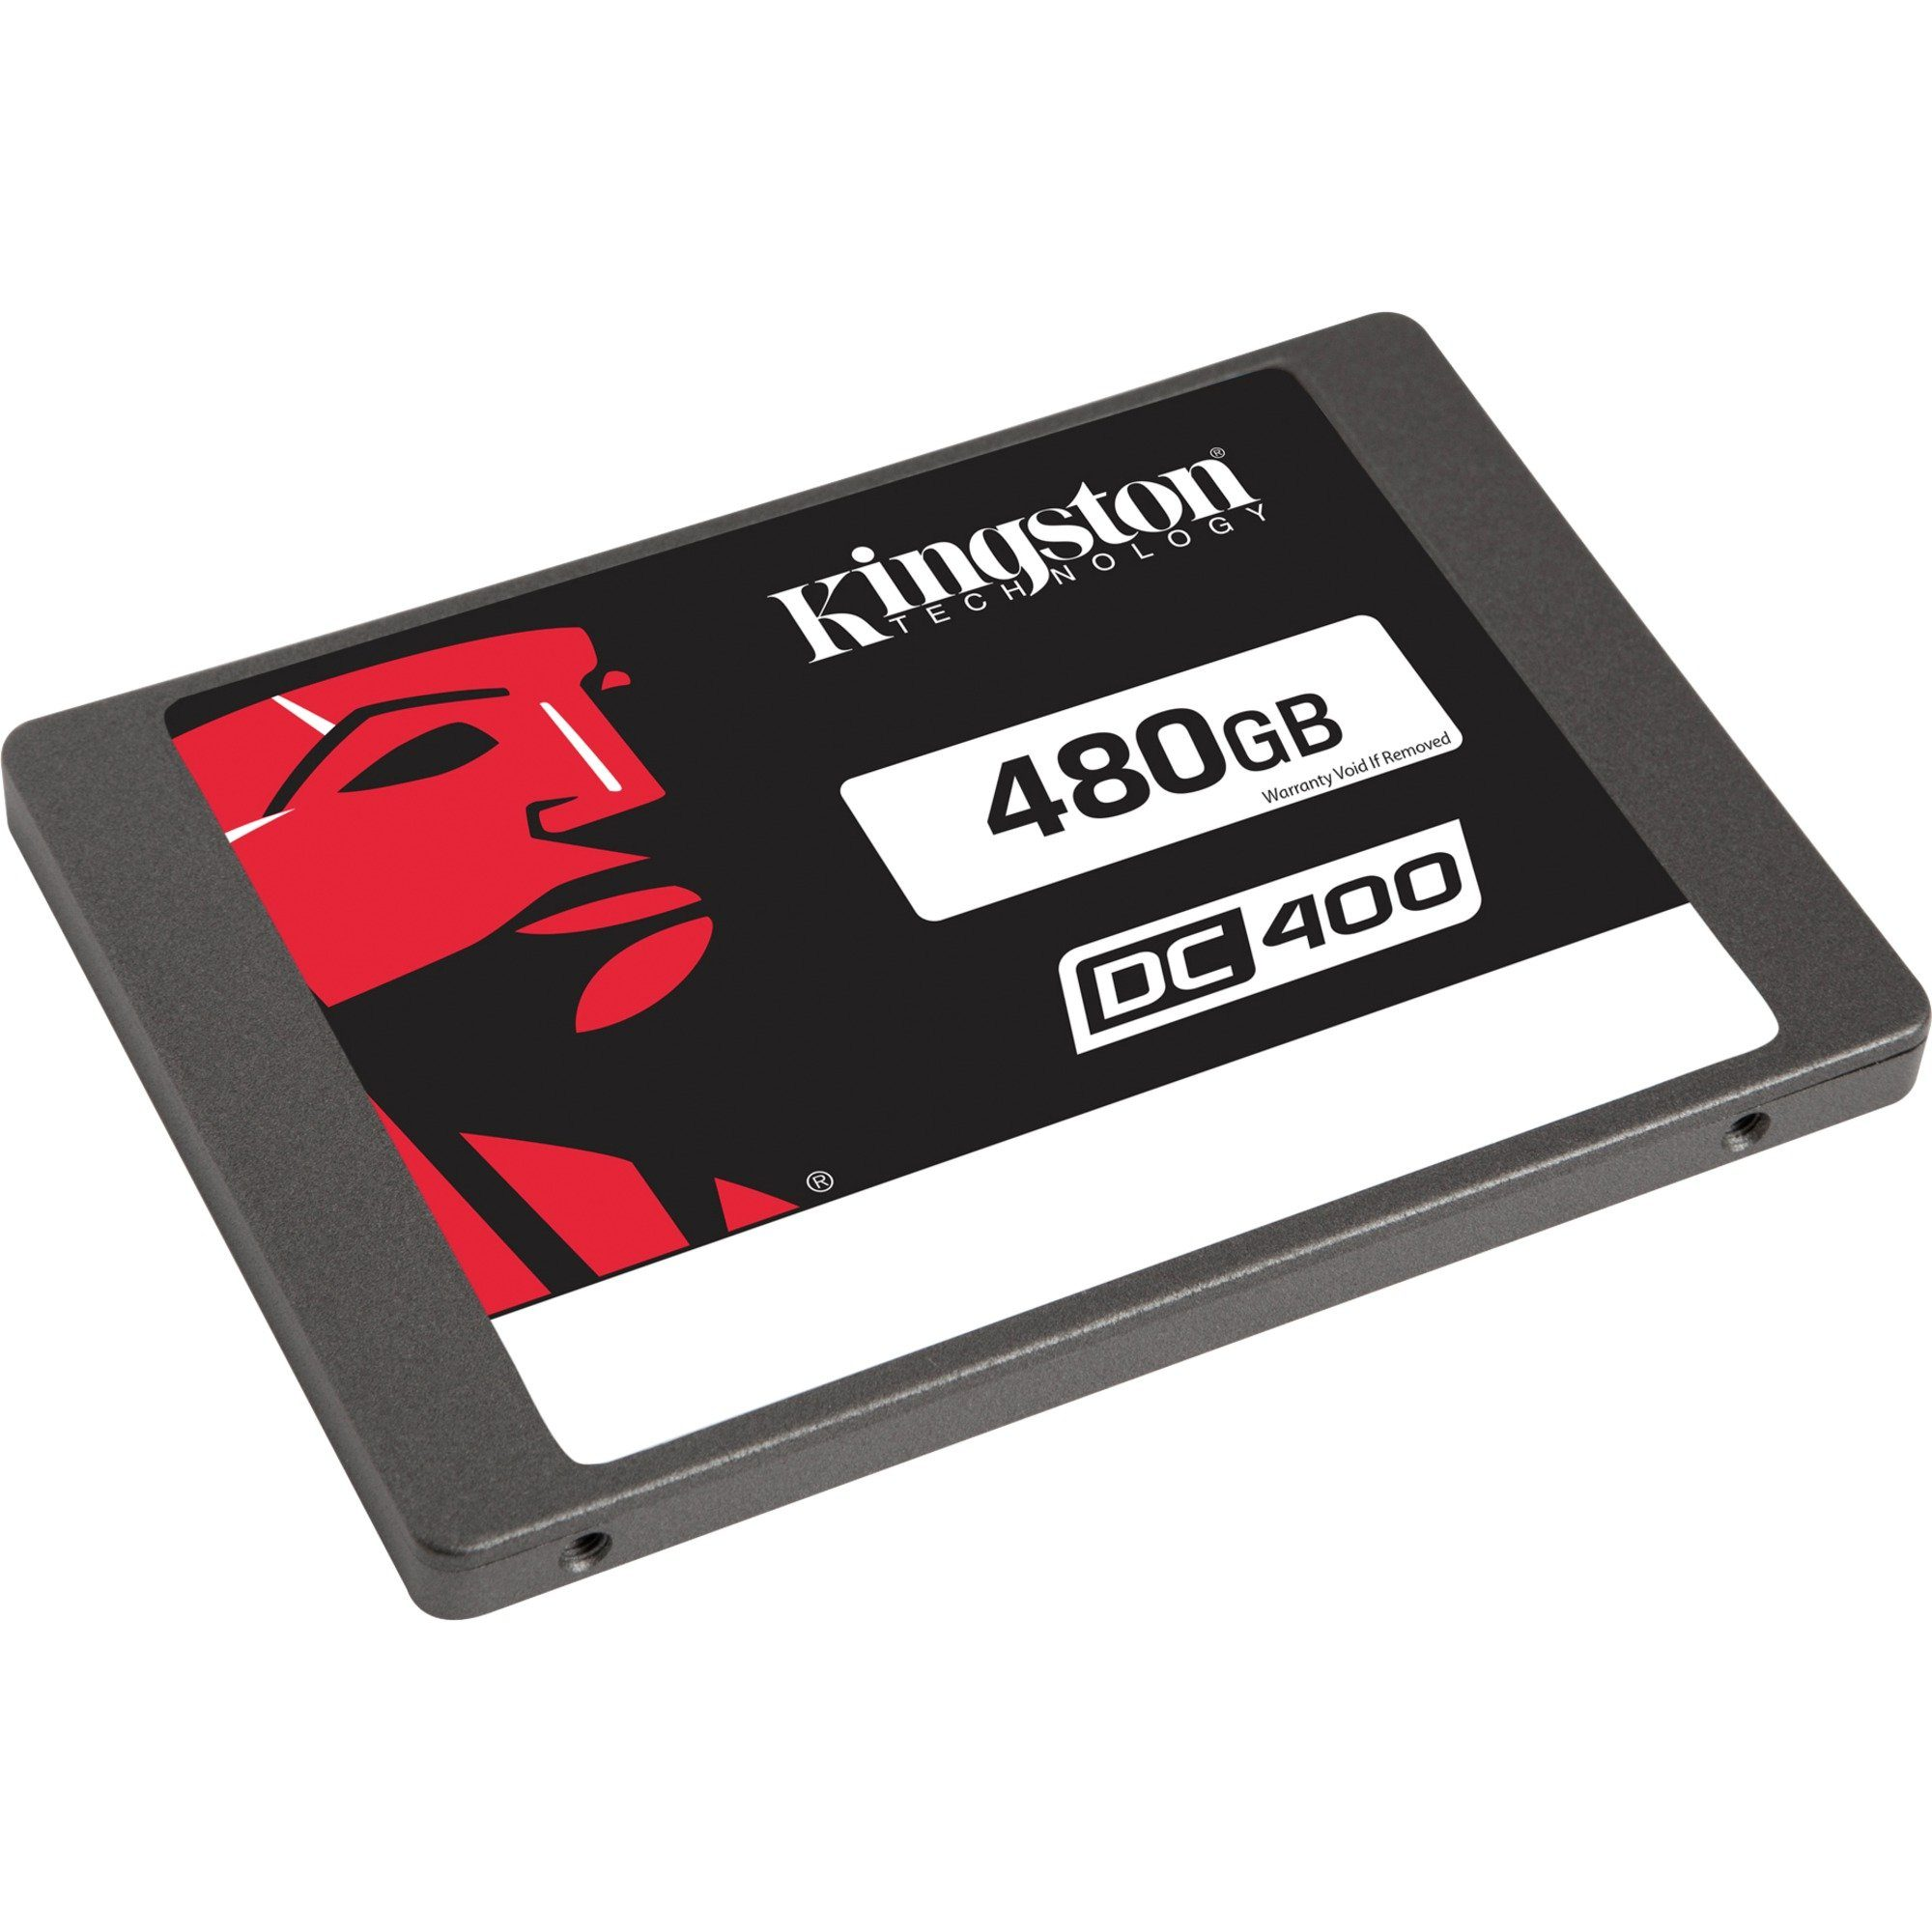 Kingston Solid State Drive »480 GB DC400«